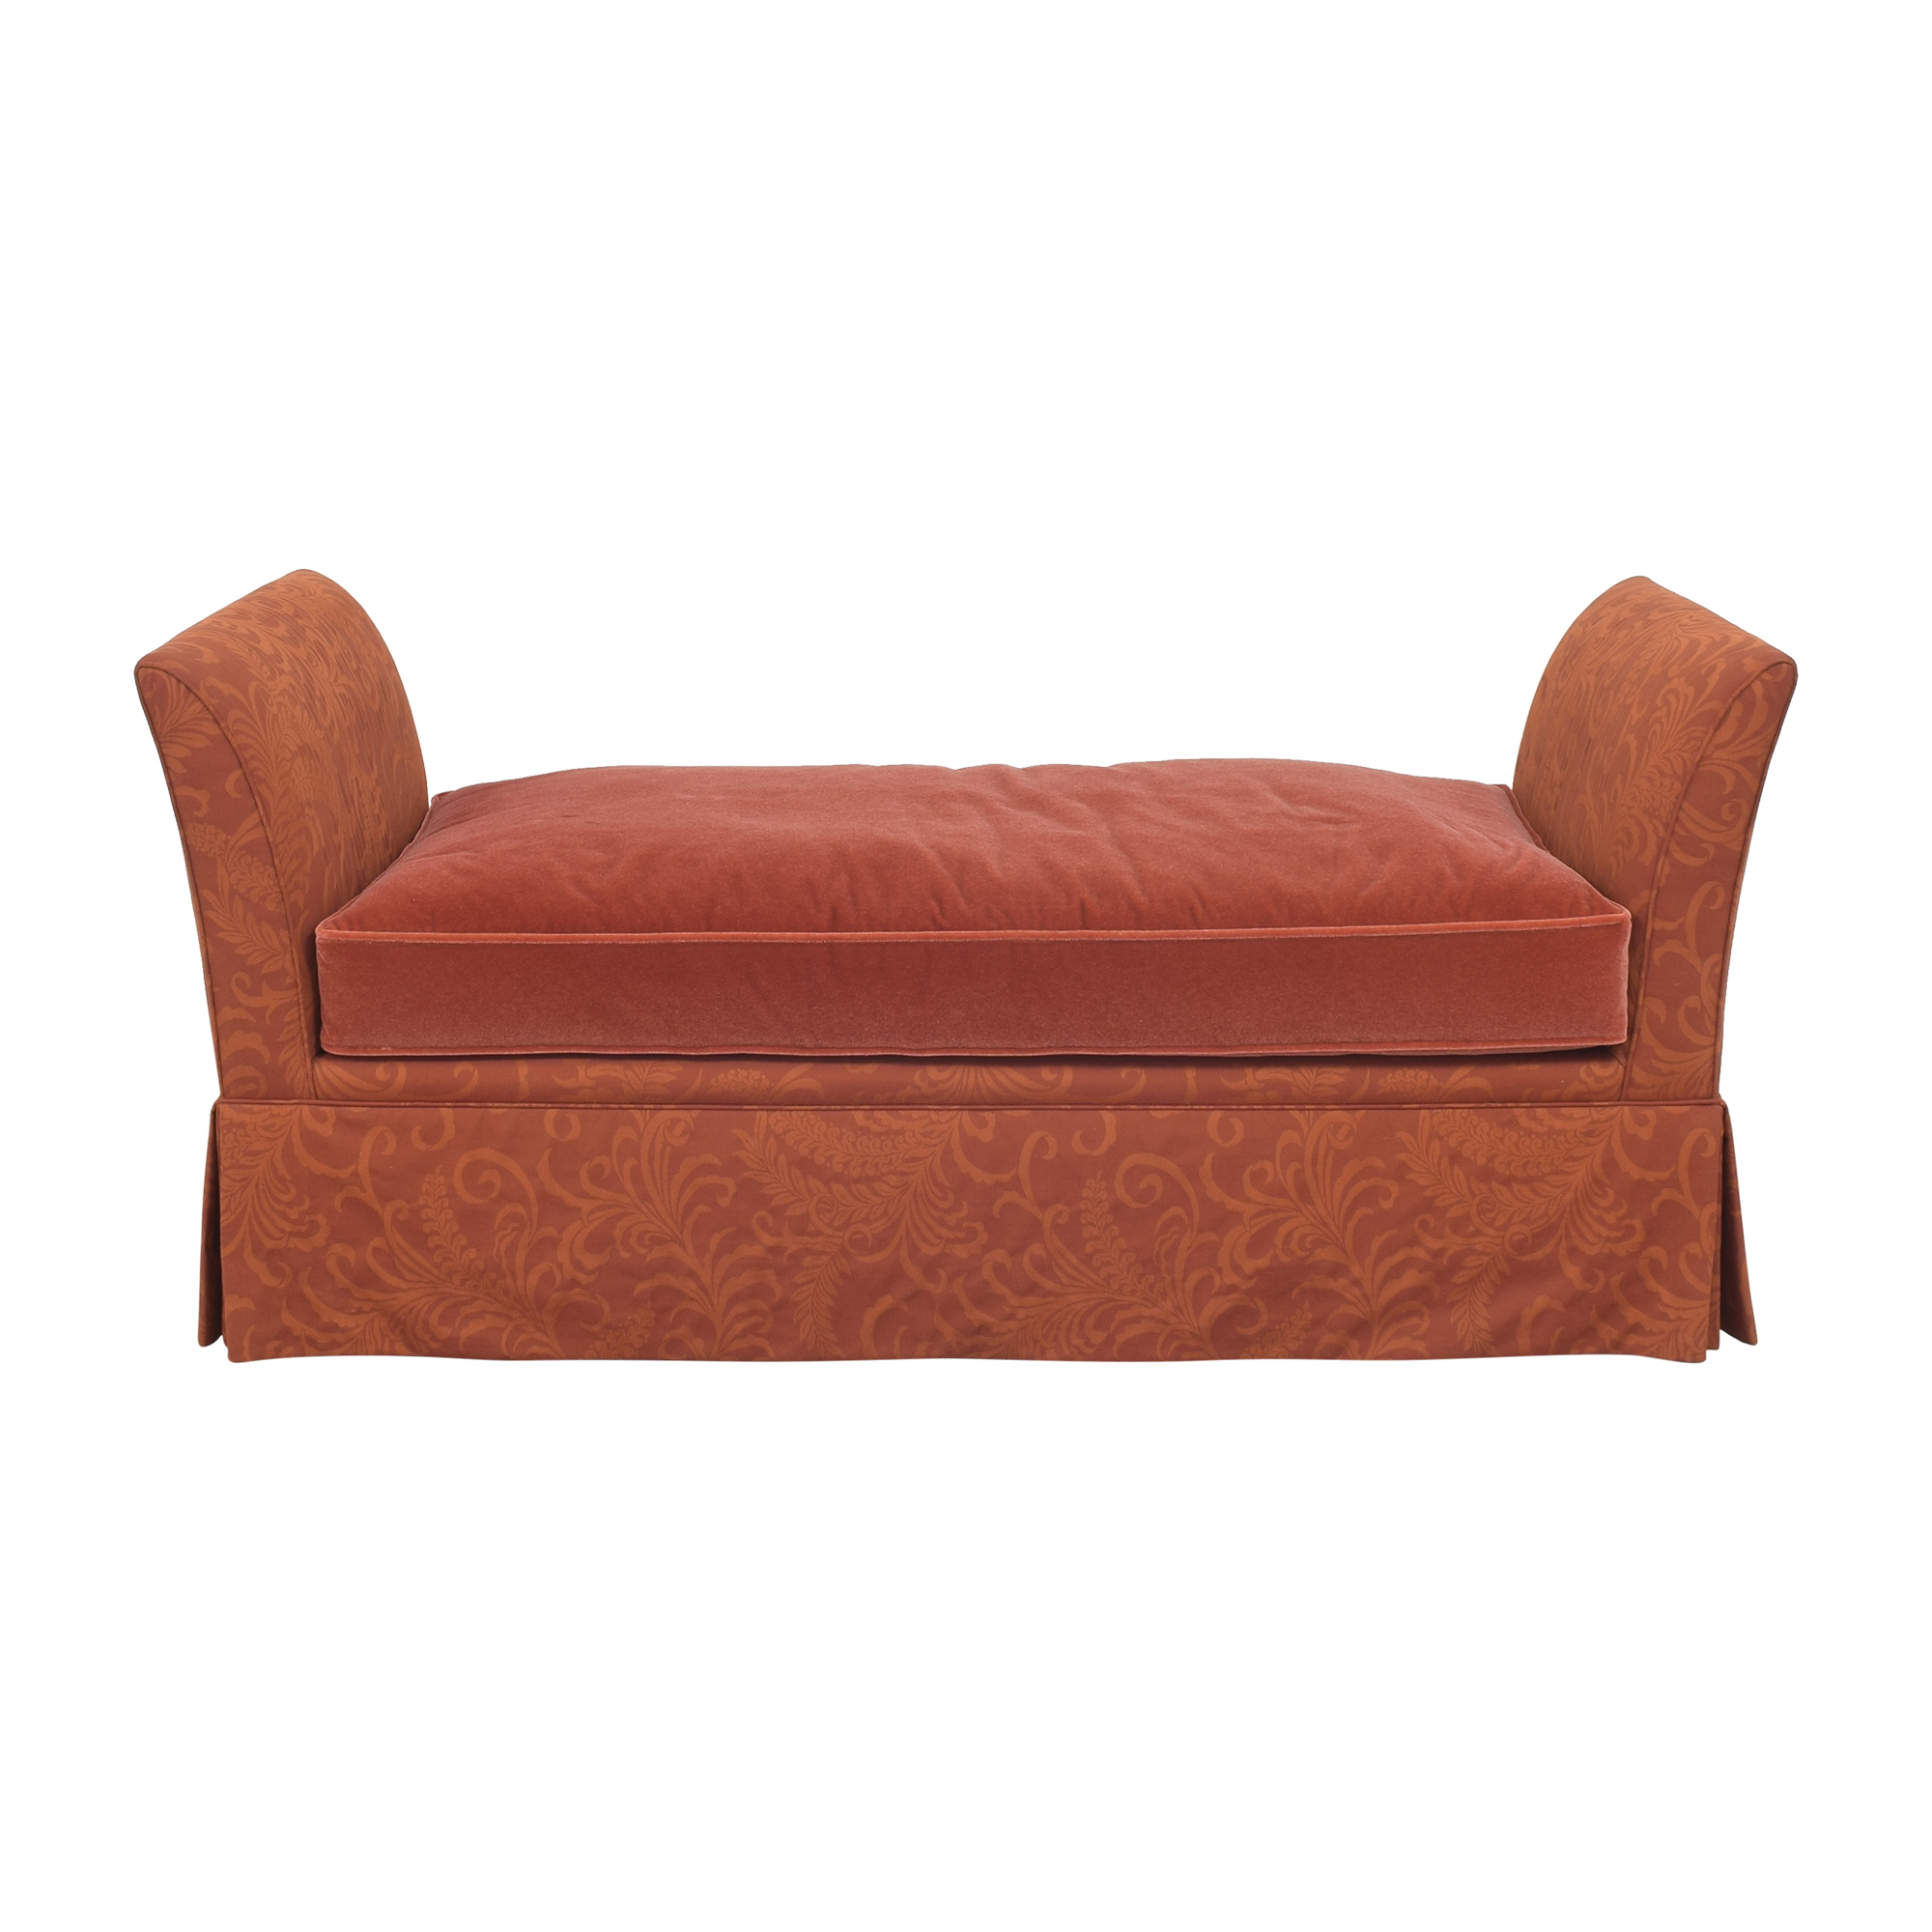 Lee Industries Lee Industries Skirted Daybed with Pillows second hand